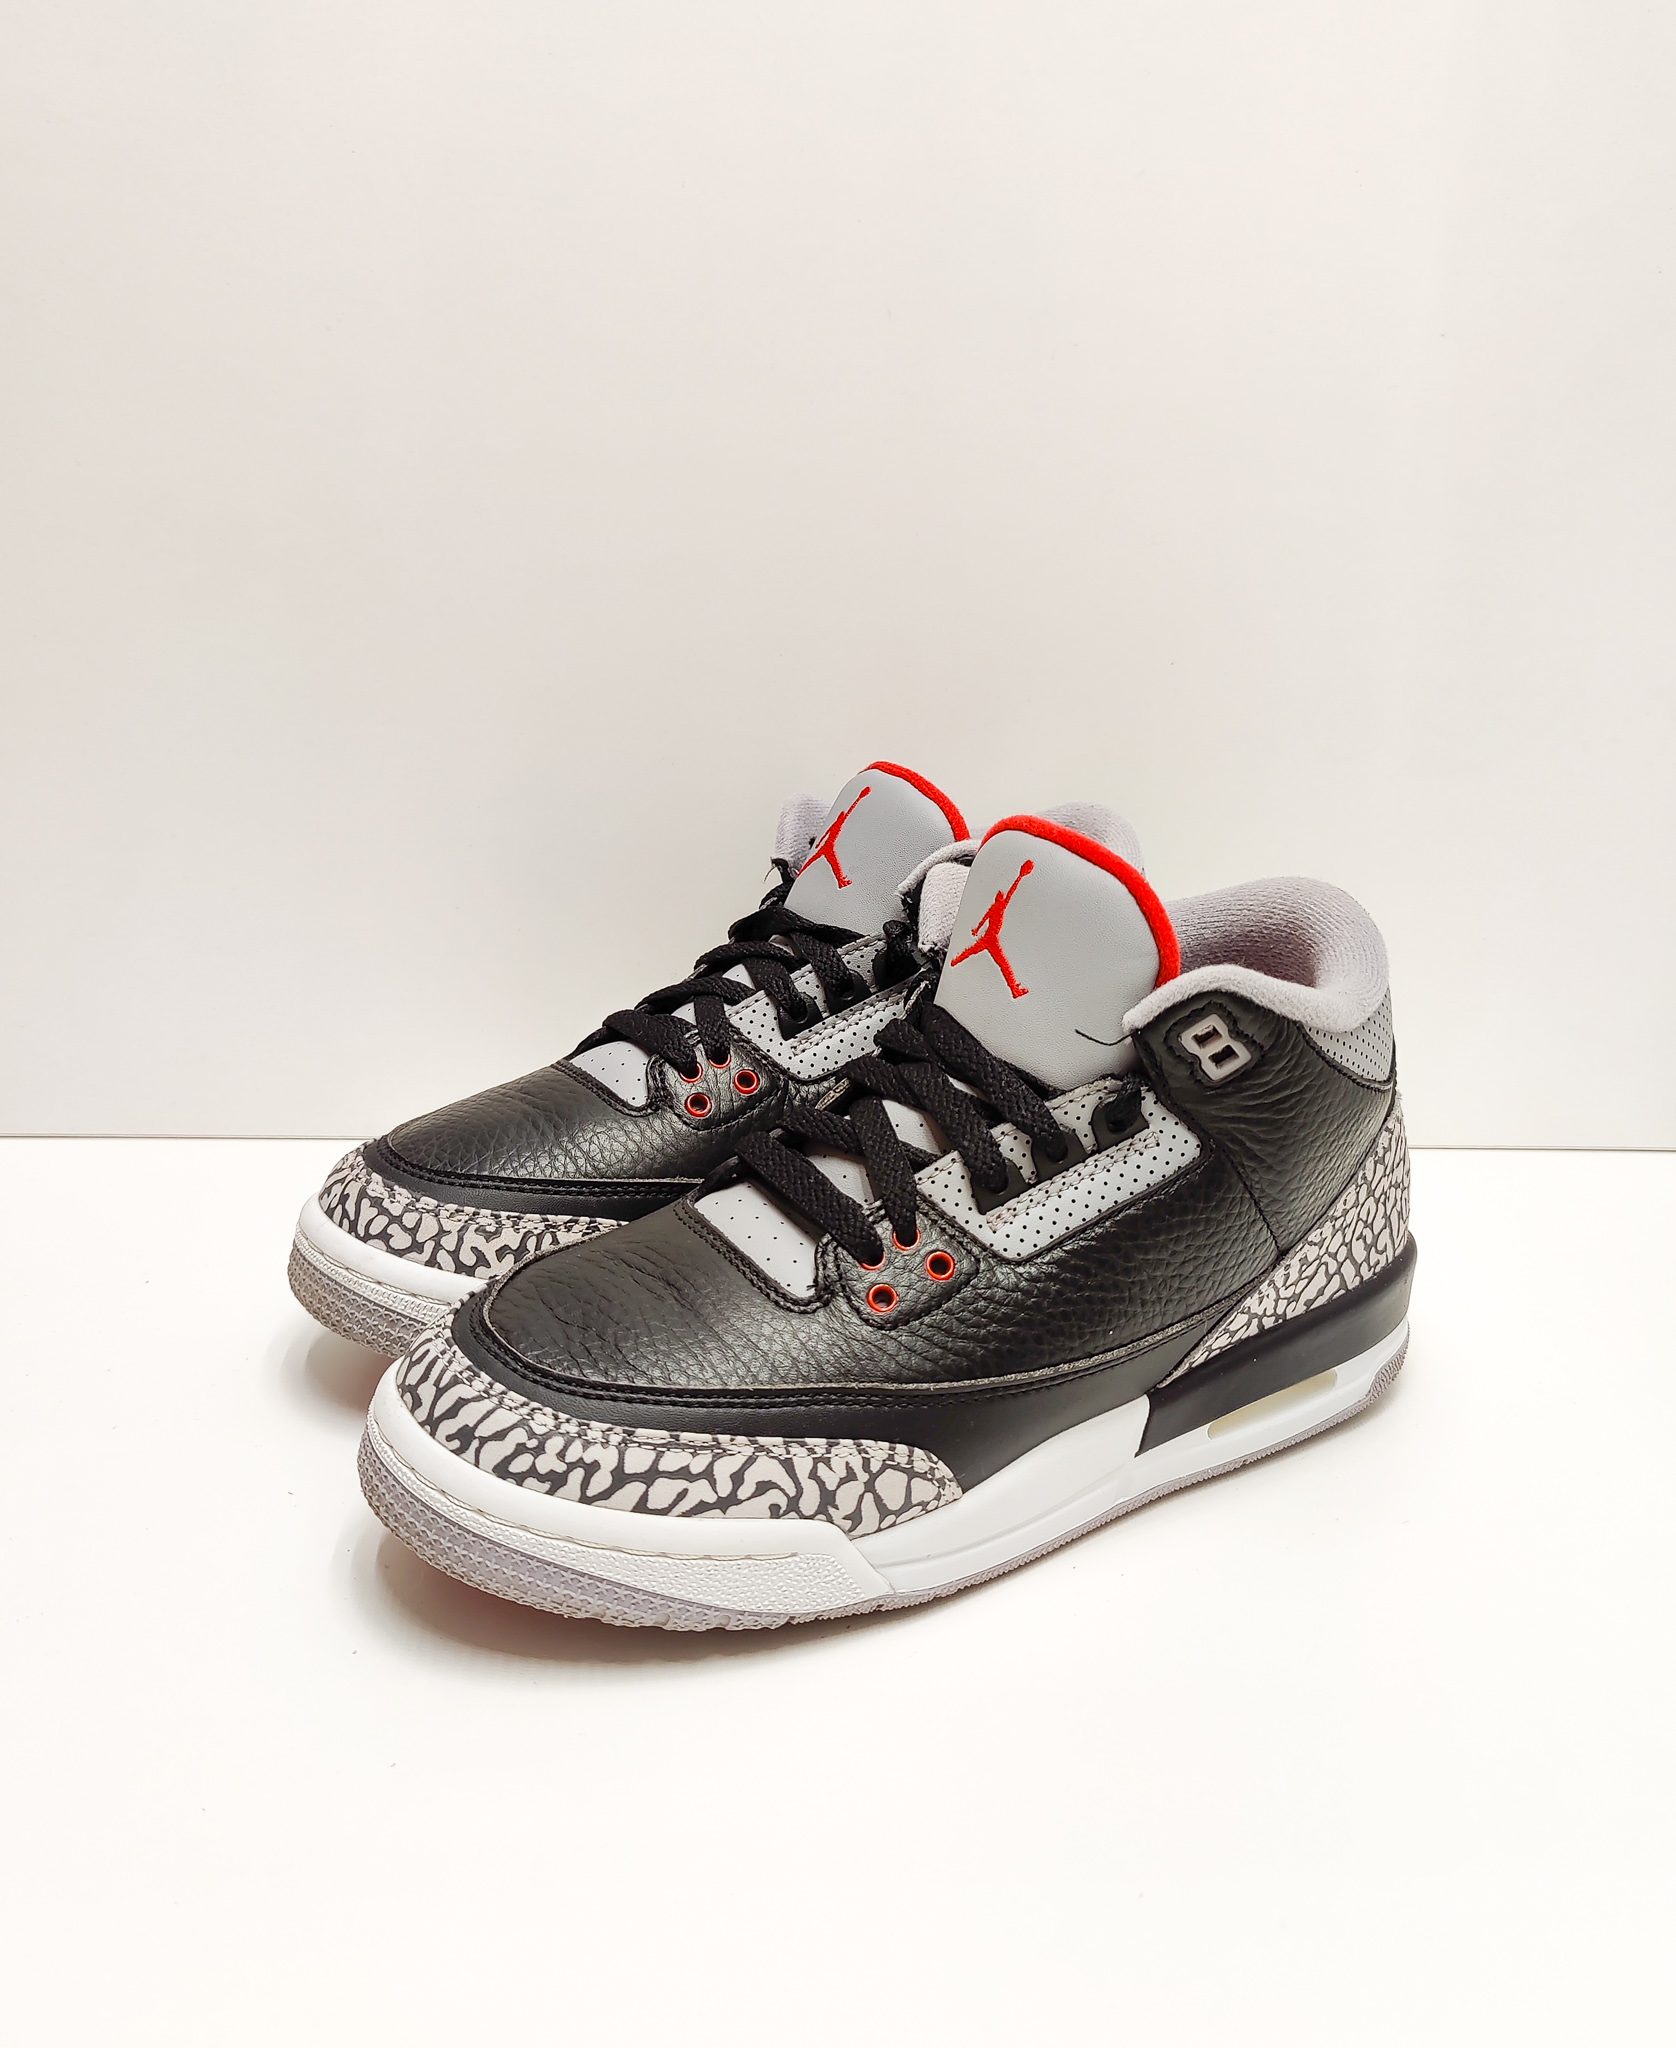 Jordan 3 Retro Black Cement GS